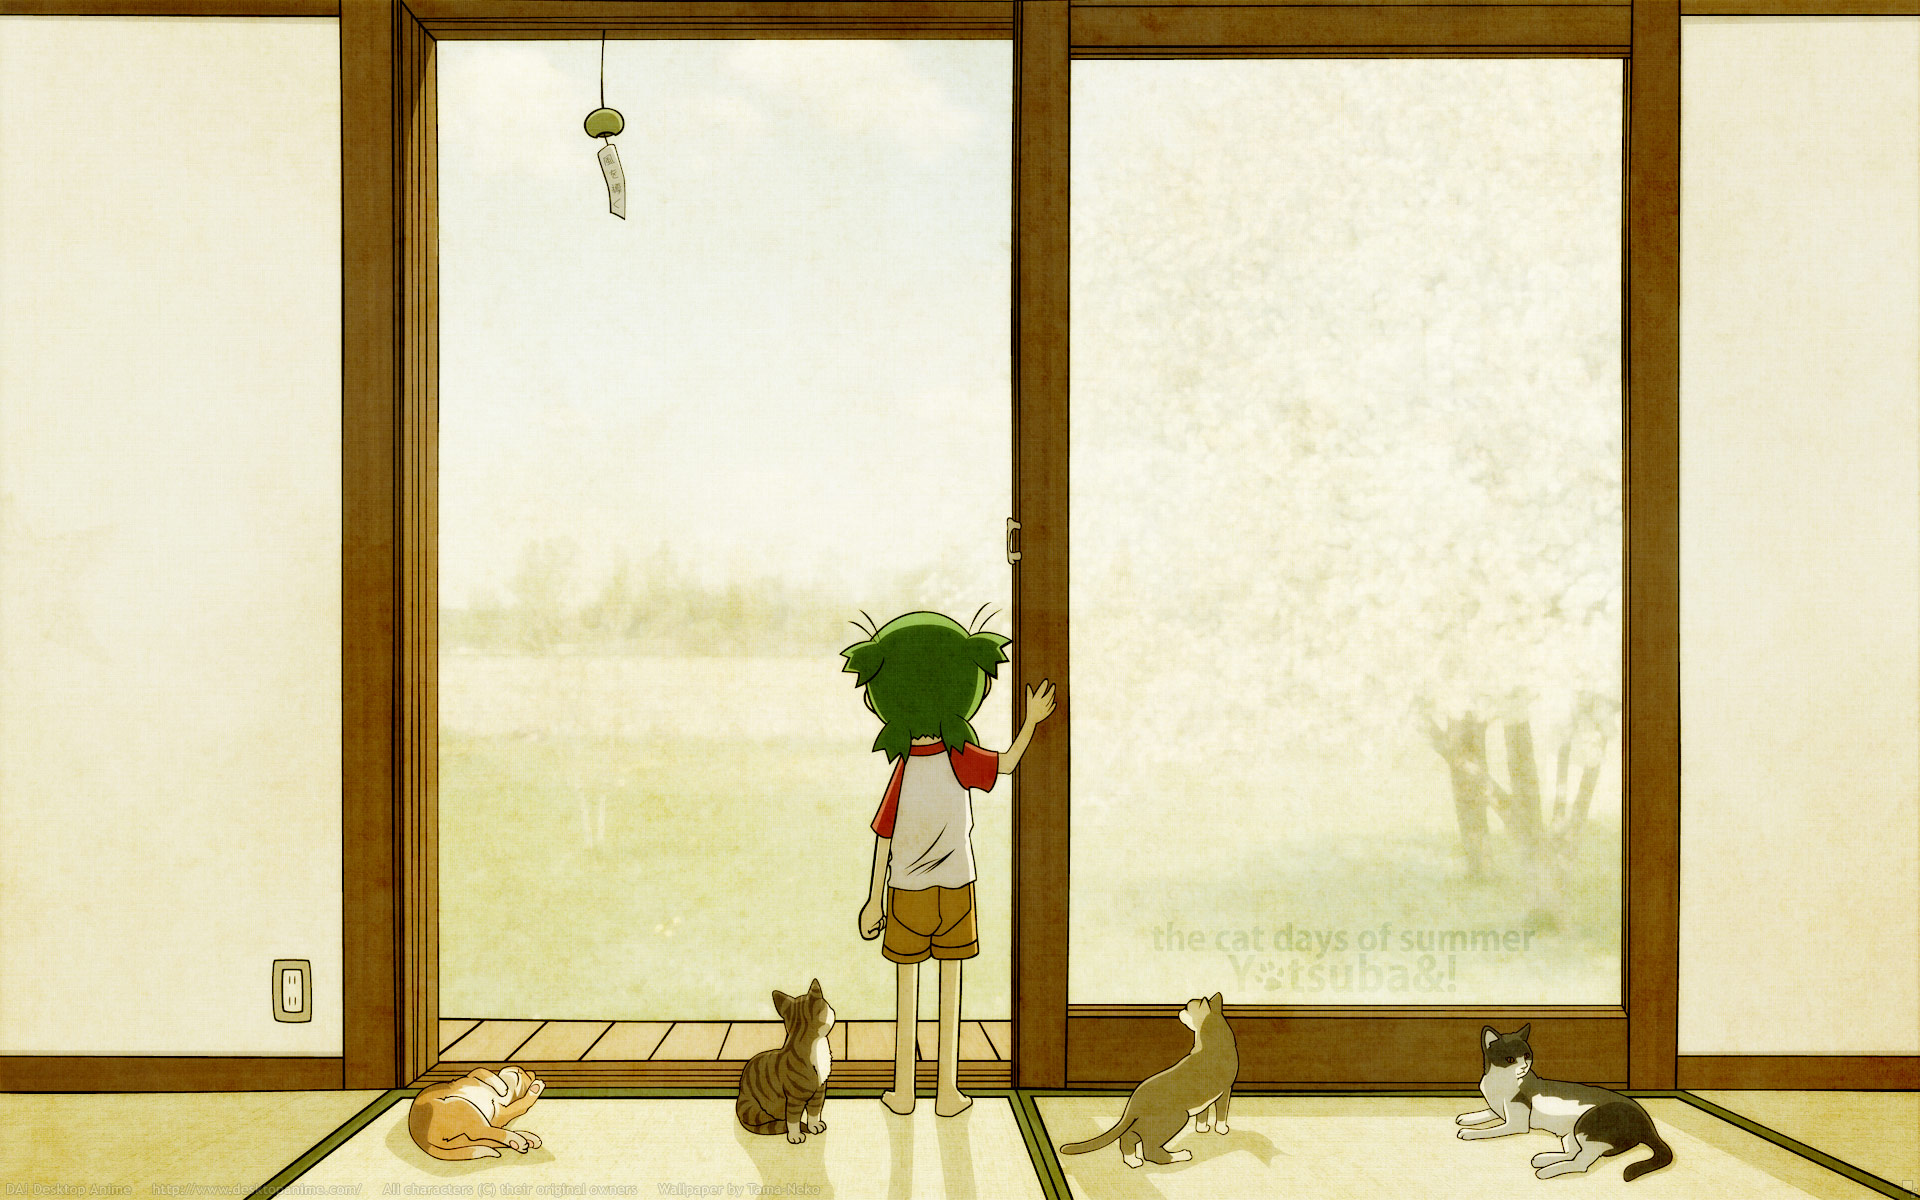 Yotsuba wallpaper | YOTSUBA &- ! | Pinterest | Wallpaper, Manga and ...